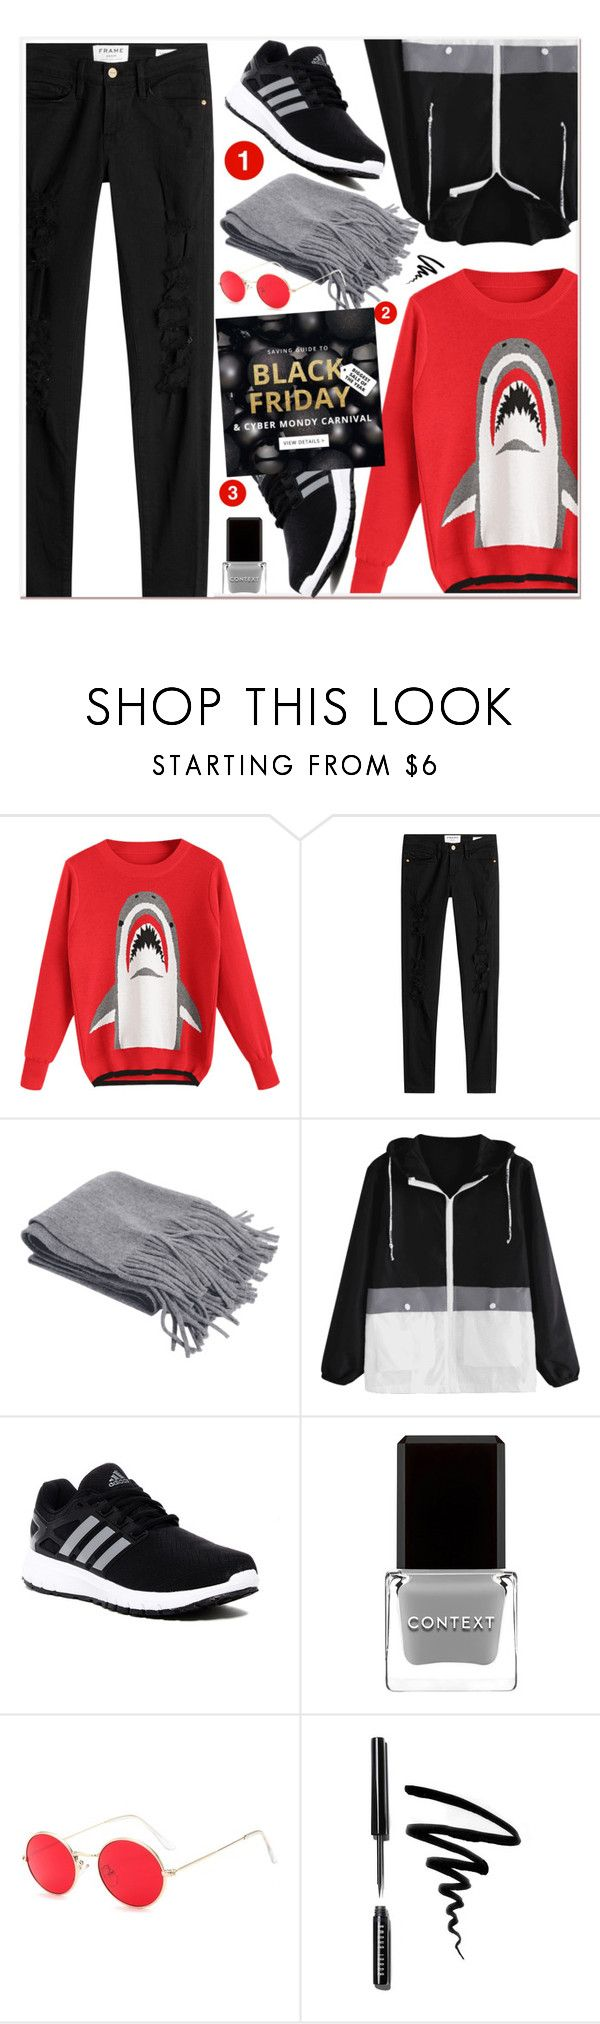 """""""Black Friday&Cyber Monday Carnival"""" by zaful ❤ liked on Polyvore featuring Frame, adidas, Context and Bobbi Brown Cosmetics"""